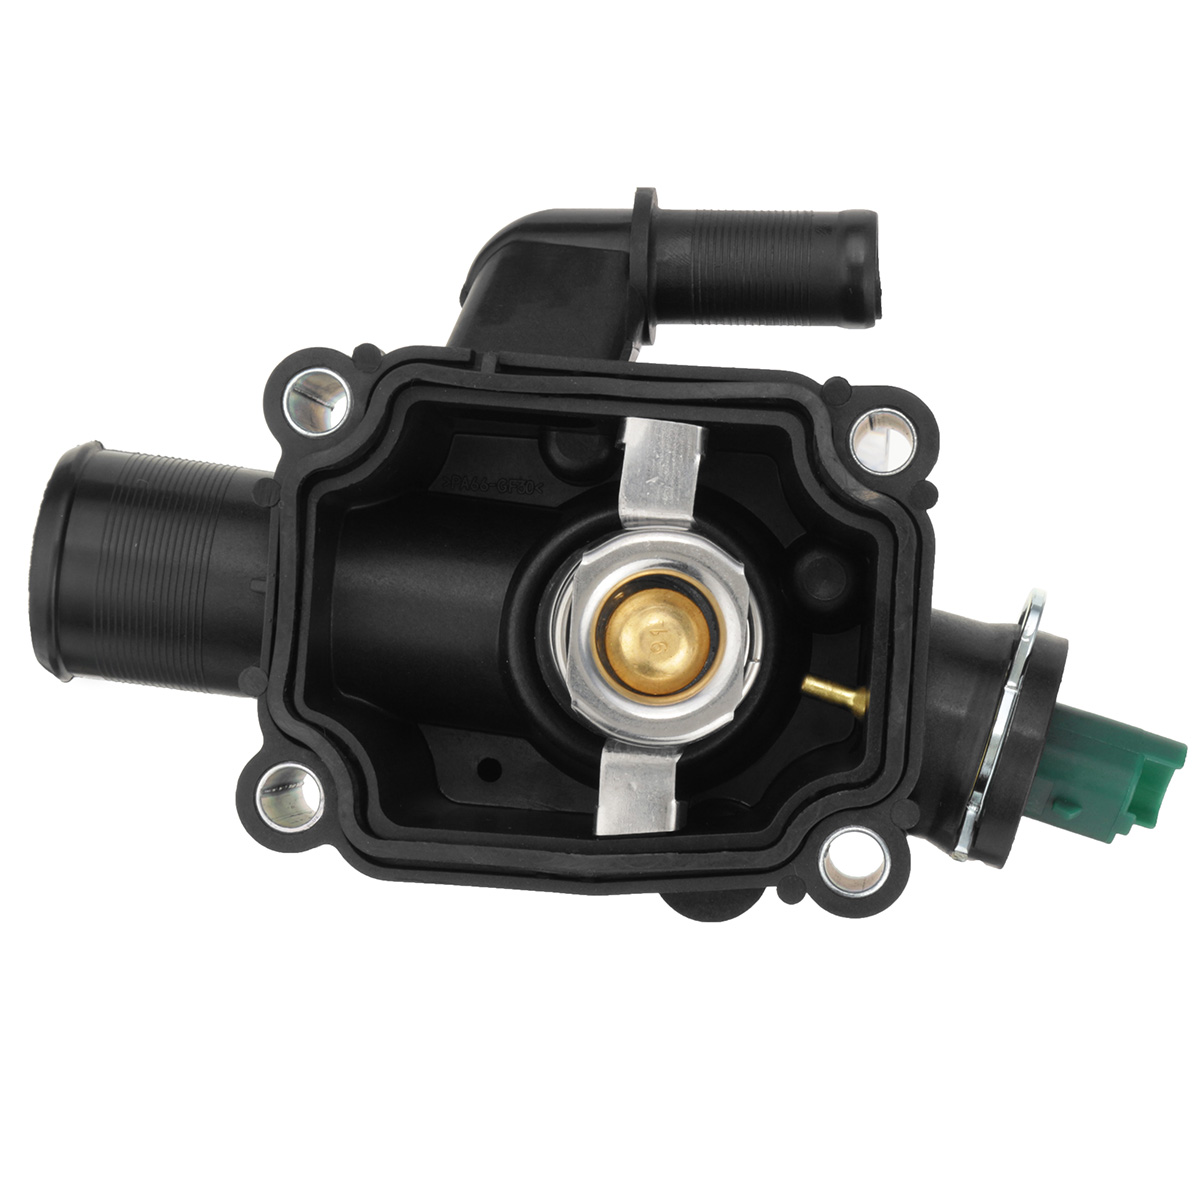 Engine Coolant Thermostat with Housing For Peugeot Partner 1007 206 207 307  308 For Citroen Berlingo C Elysee C2 C3 C4 Xsara-in Thermostats & Parts  from ...